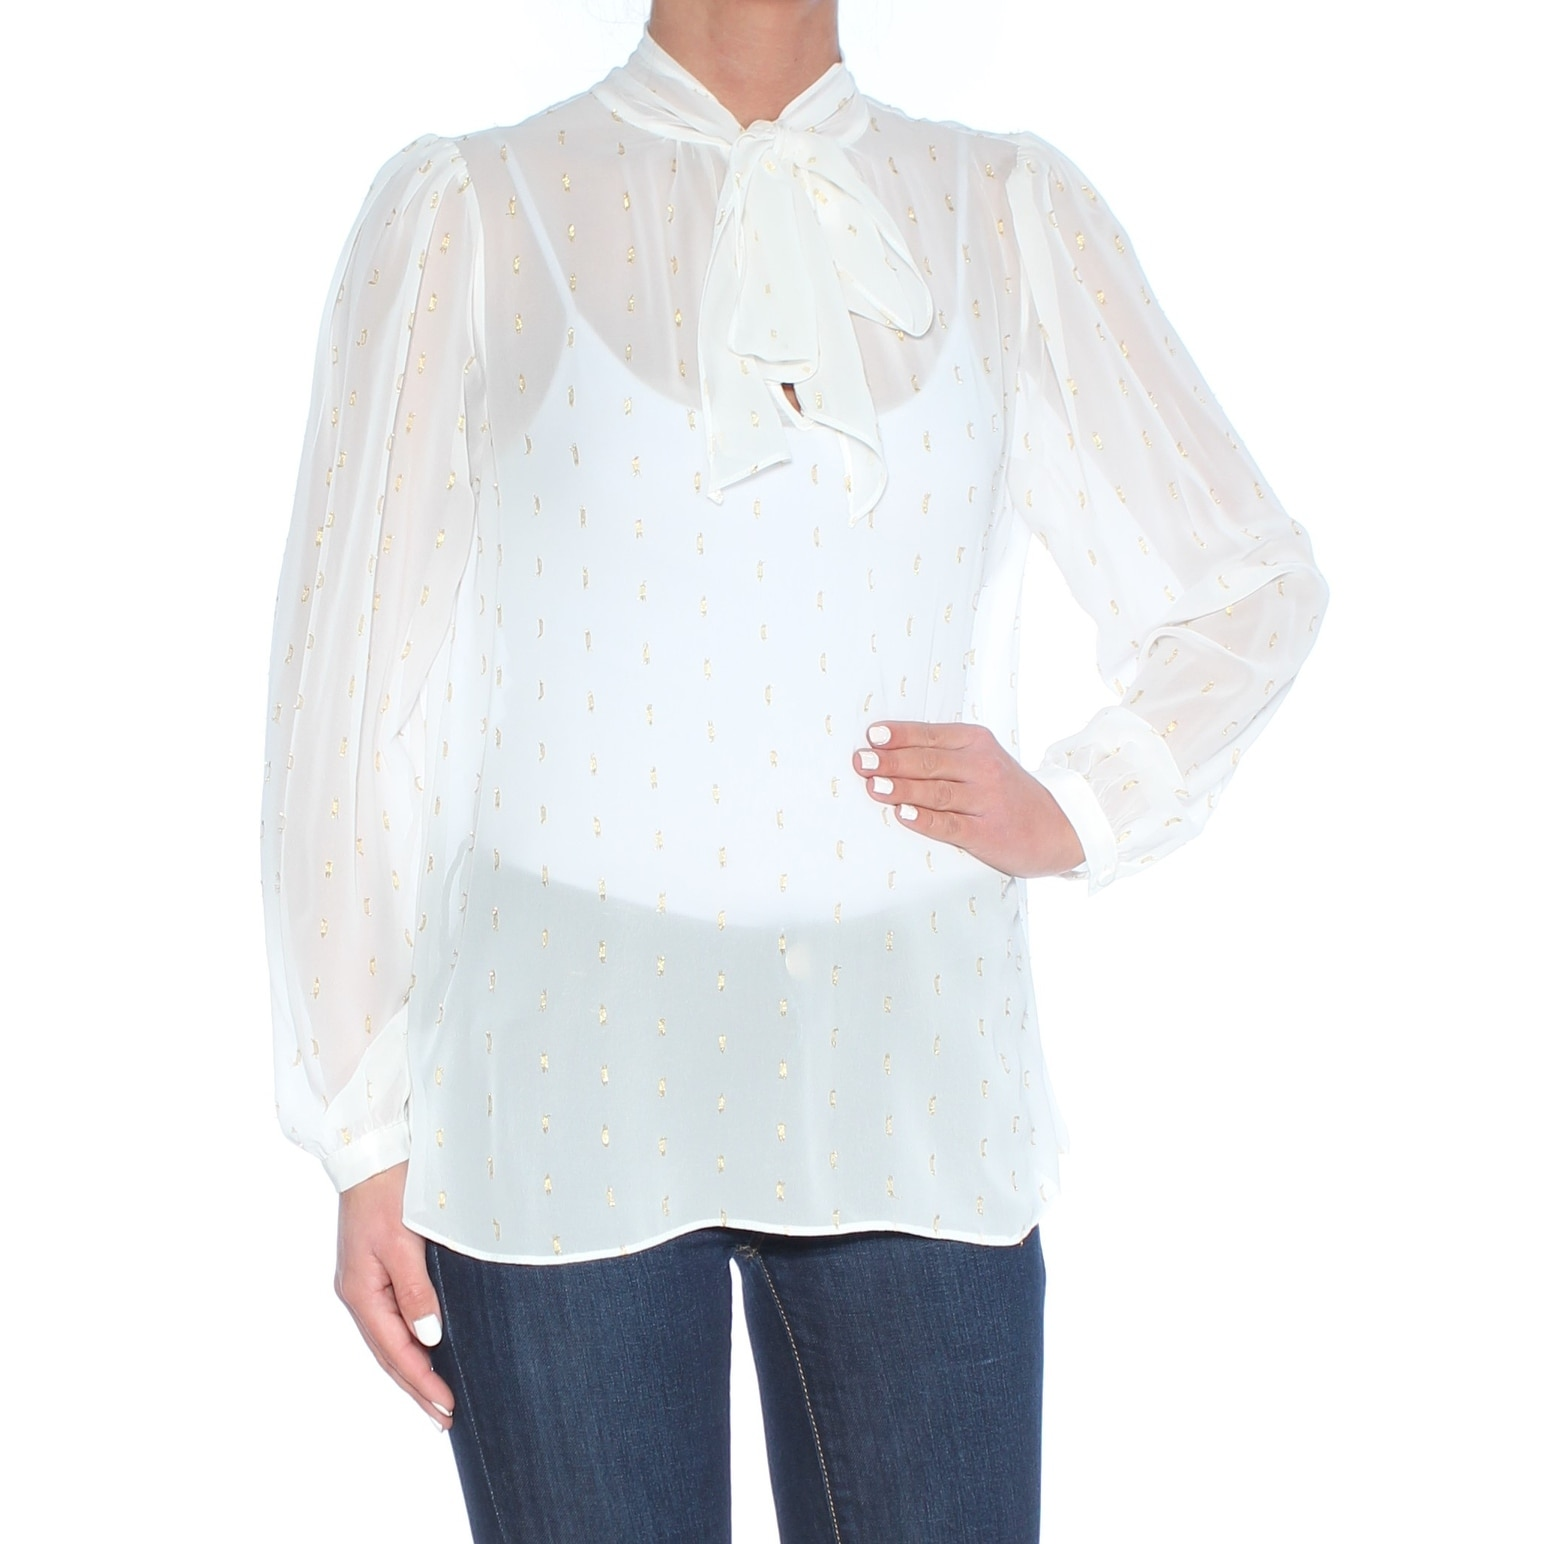 002c100b30e597 Shop CATHERINE MALANDRINO Womens Ivory Sheer Long Sleeve Tie Neck Long  Sleeve Blouse Wear To Work Top Size: S - Free Shipping On Orders Over $45 -  Overstock ...